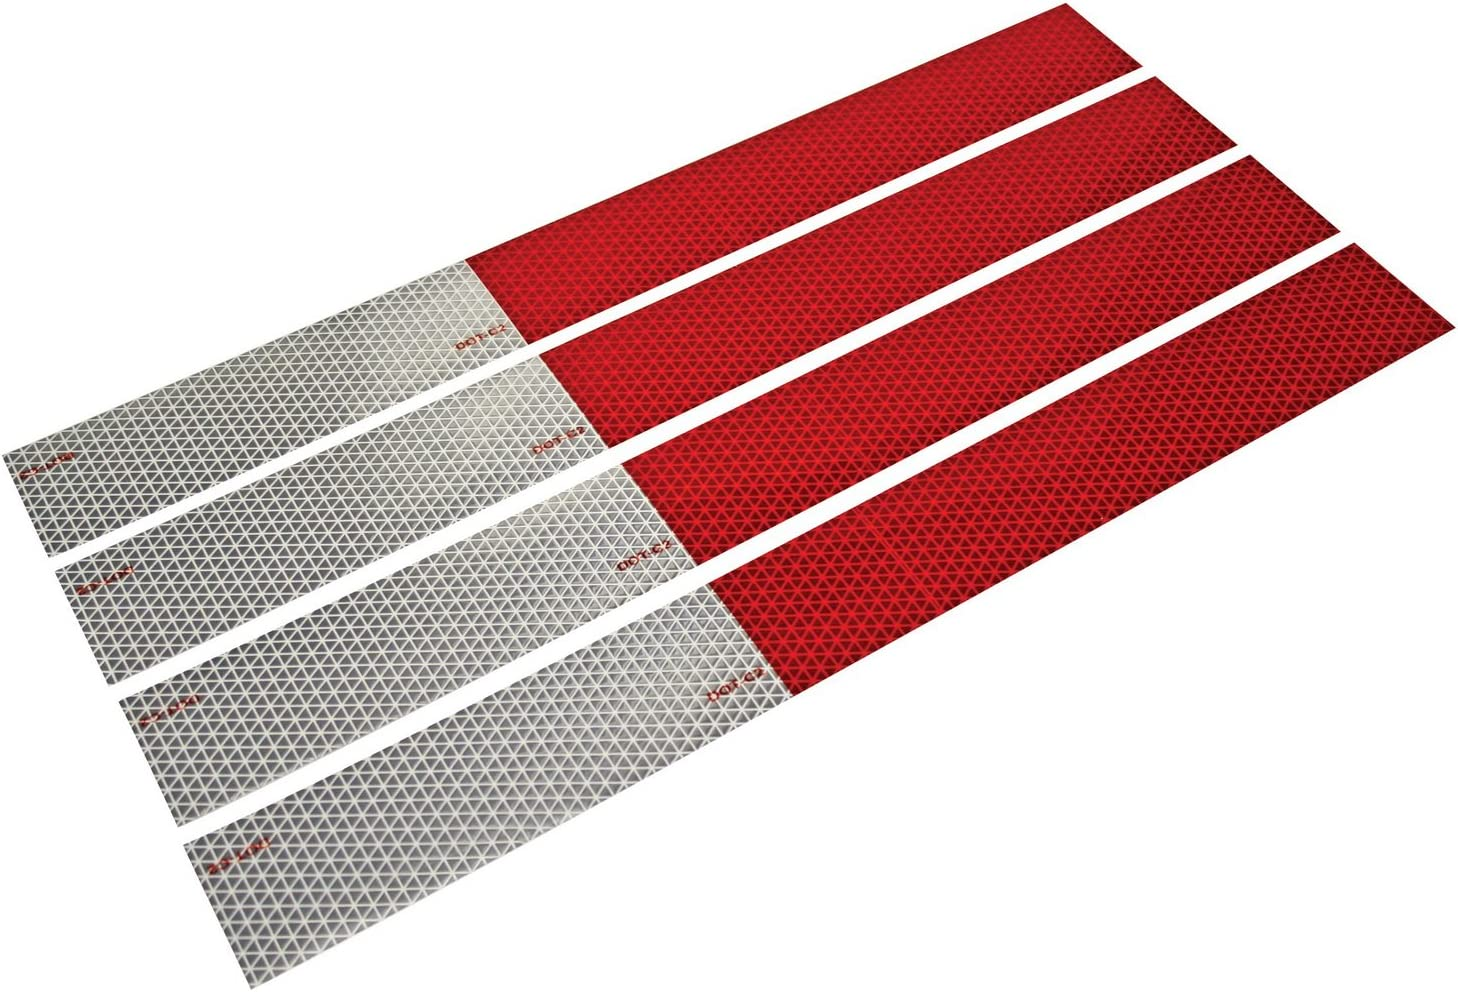 Reese Towpower 73886 Conspicuity Tape Strip Kit